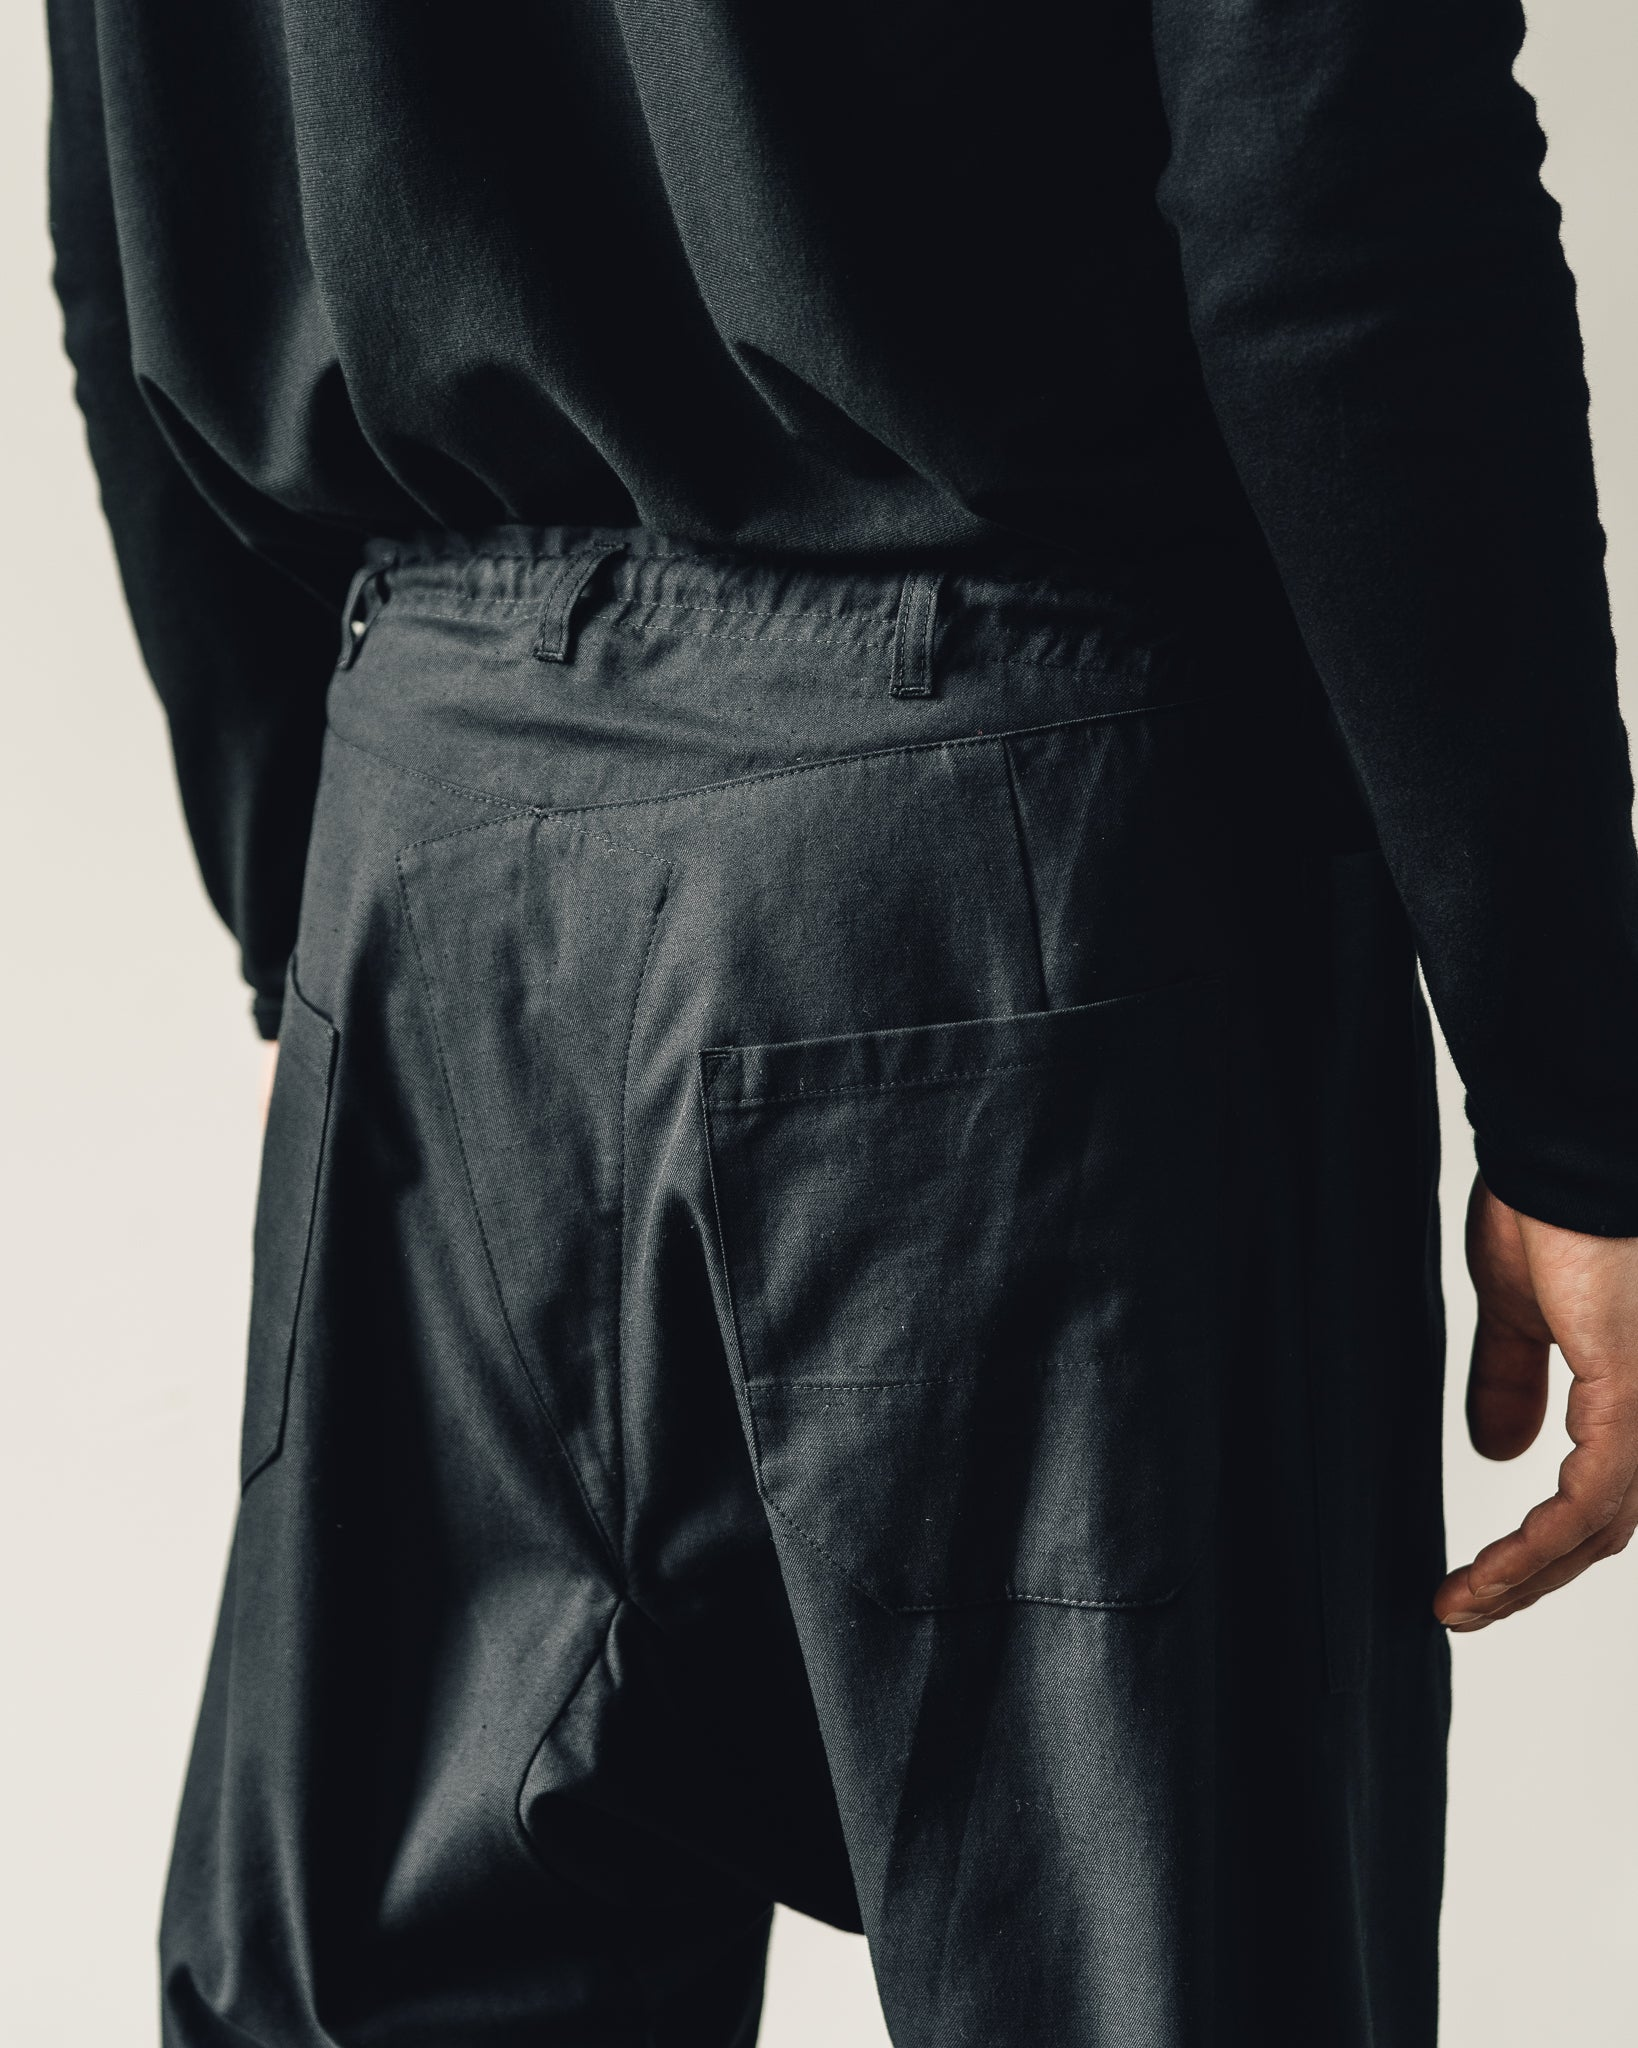 Jan-Jan Van Essche Trousers #50, Black Soft Twill